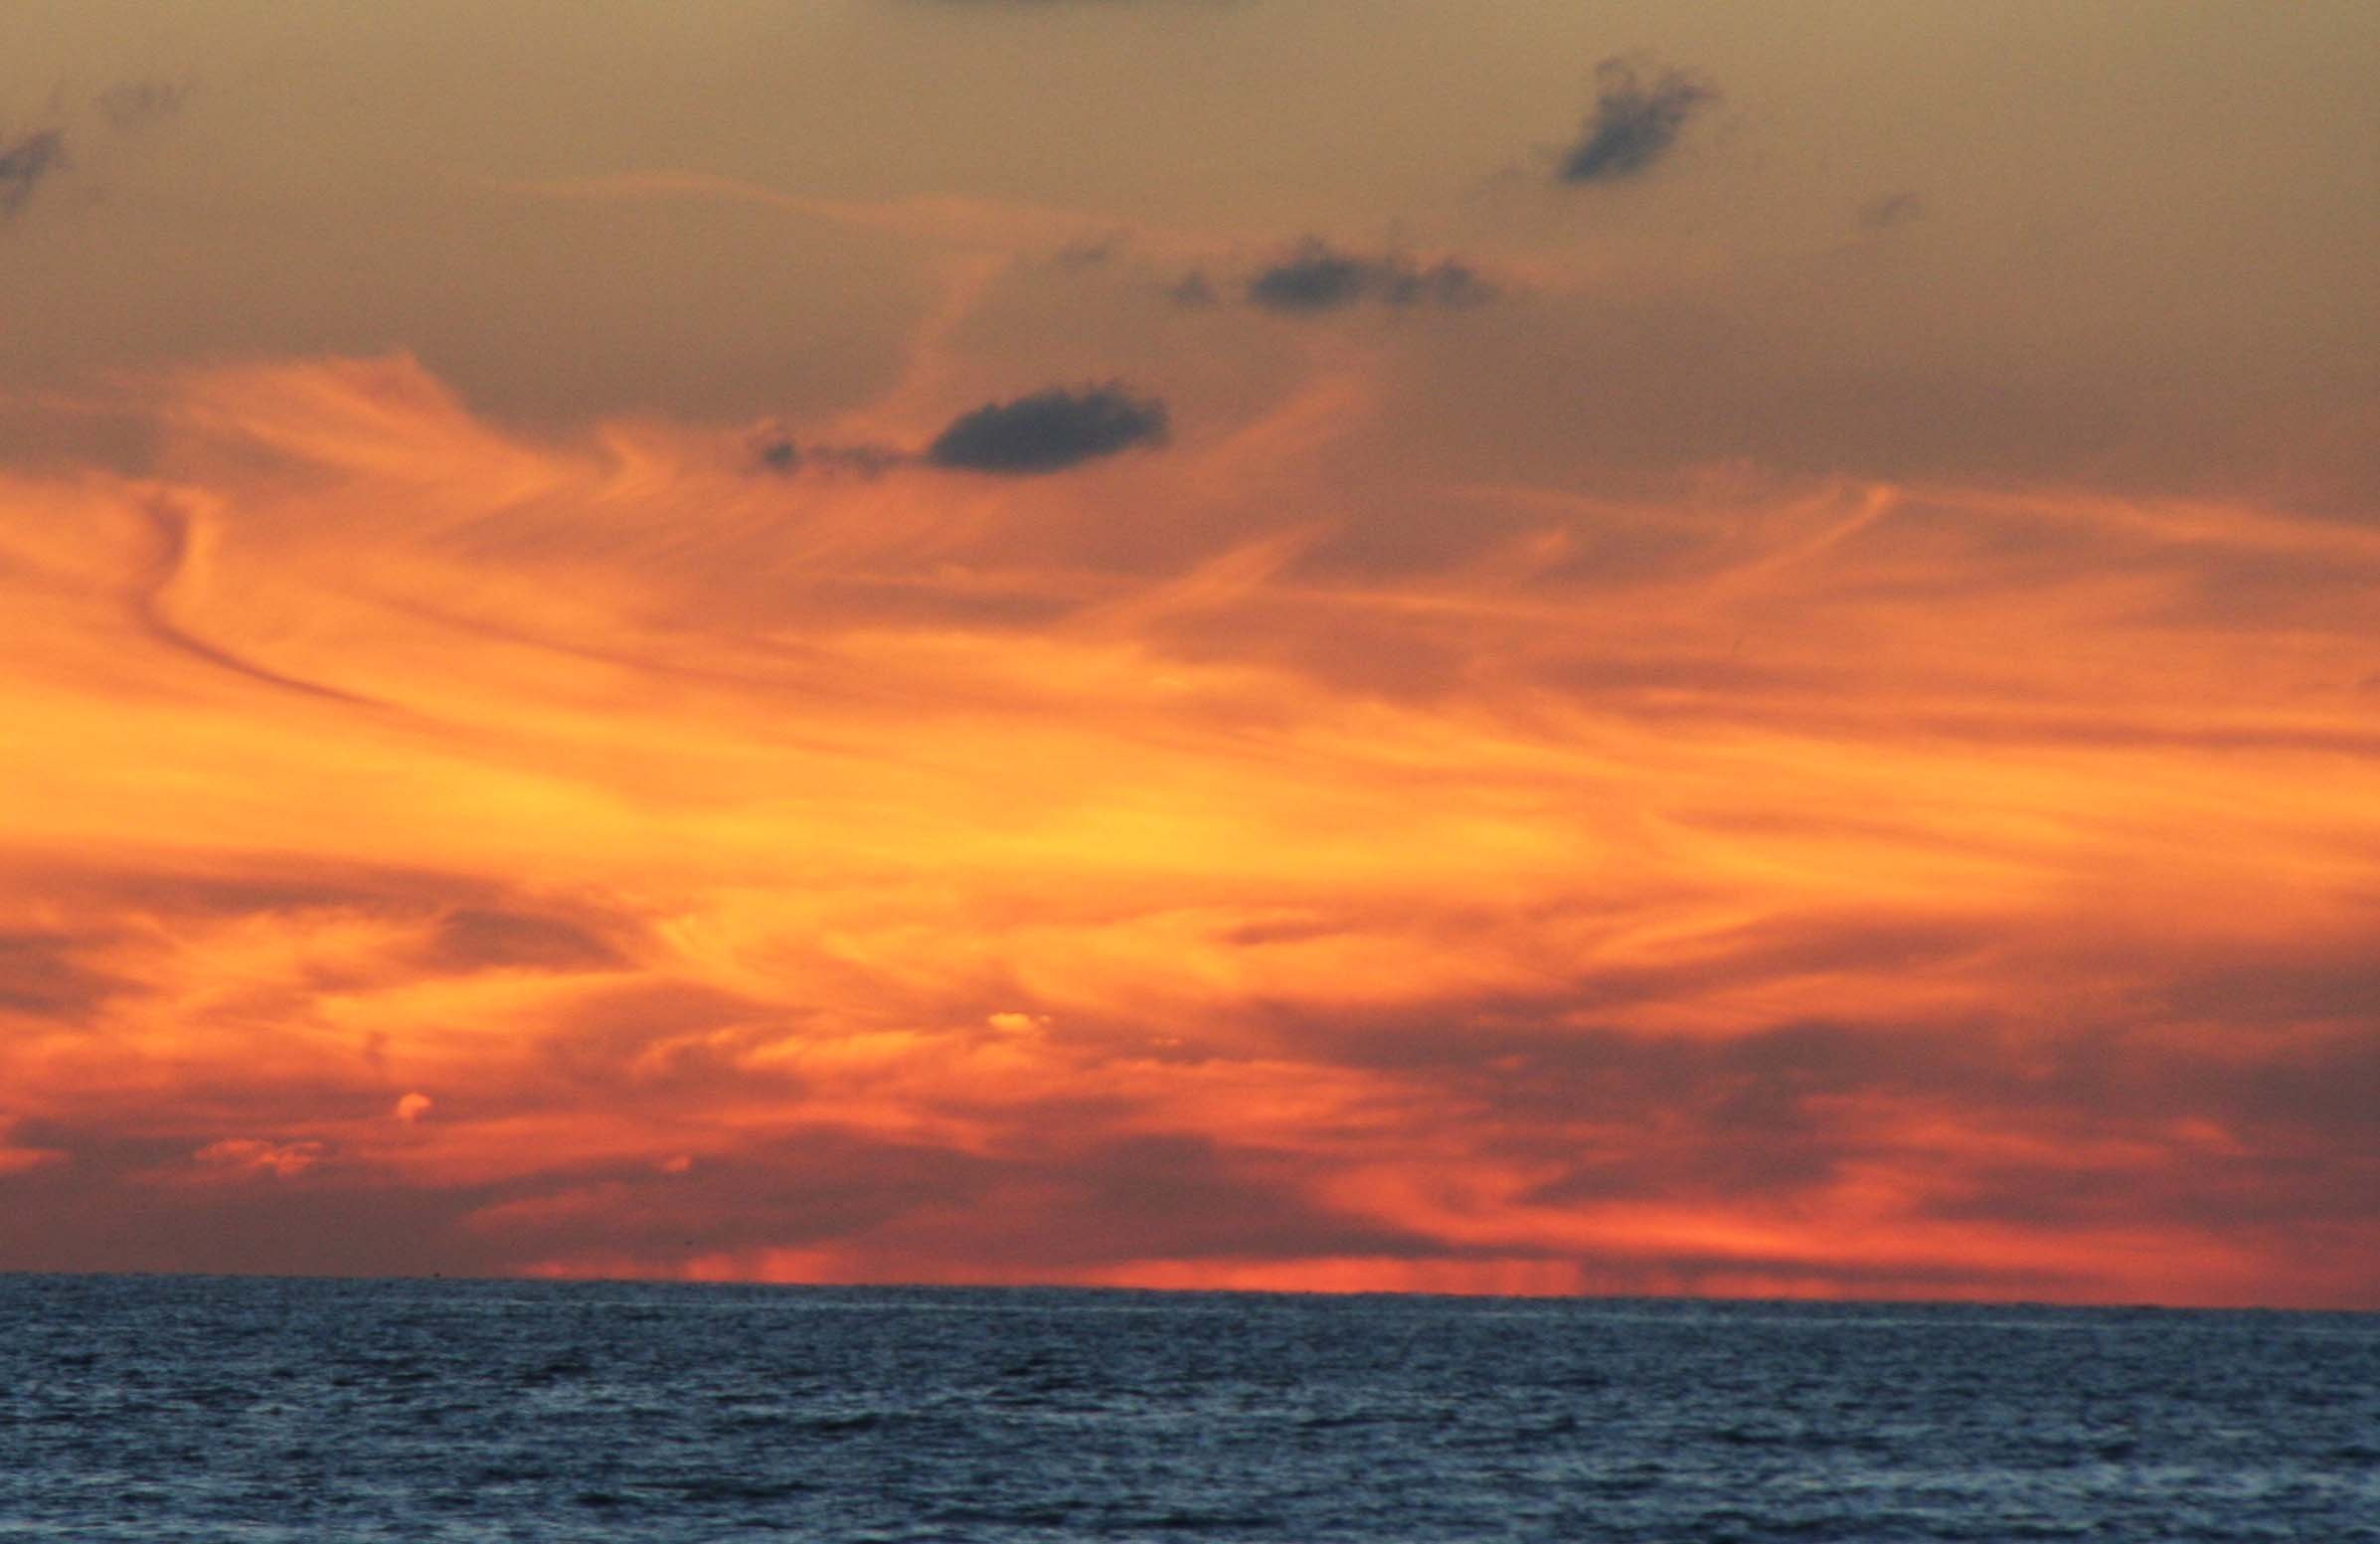 Sometimes the colors of a sunset are so vivid they seem unreal. (Photo by Peggy Mekemson.)